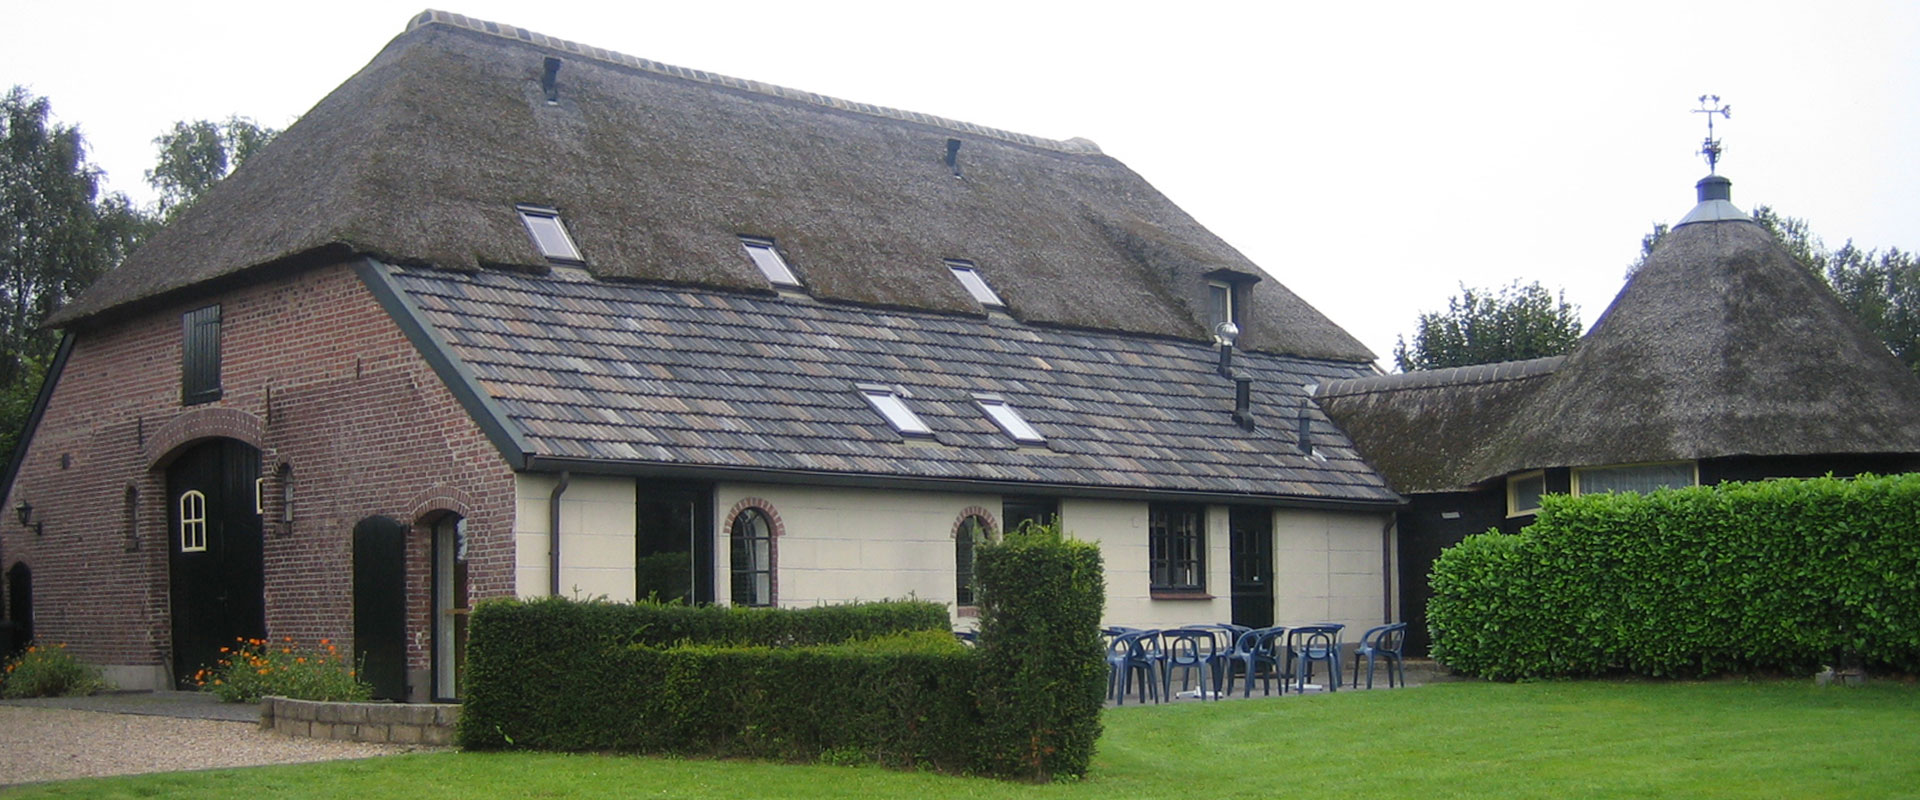 Puitenburgh-header-groot